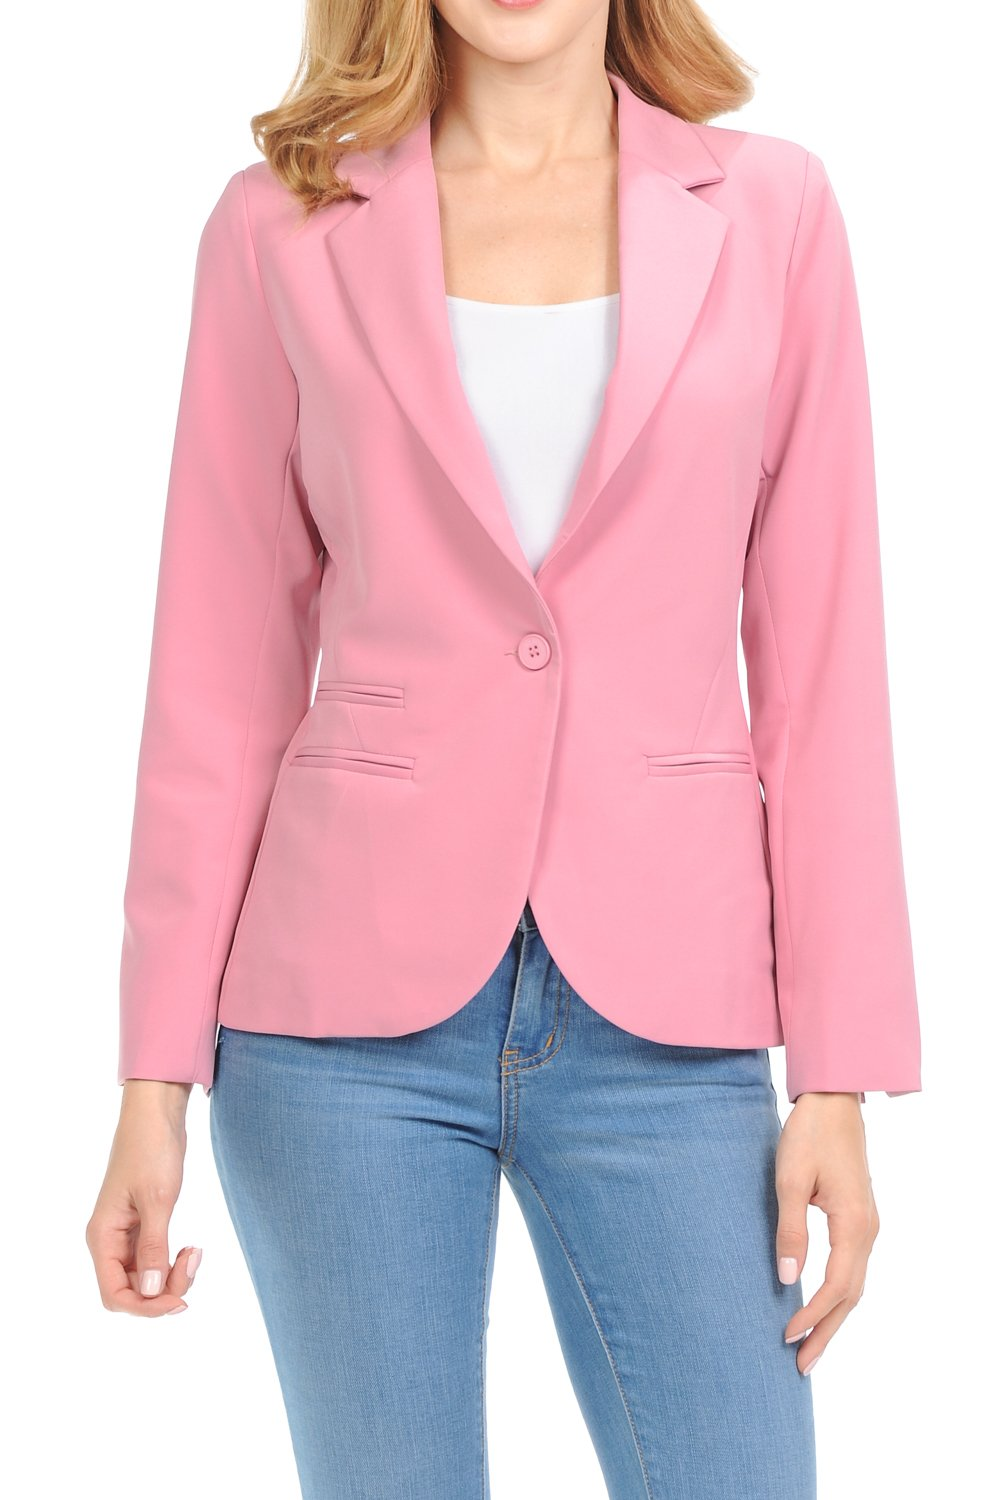 Auliné Collection Women's Color Work Office Long Sleeve Button Lined Blazer Rose XL